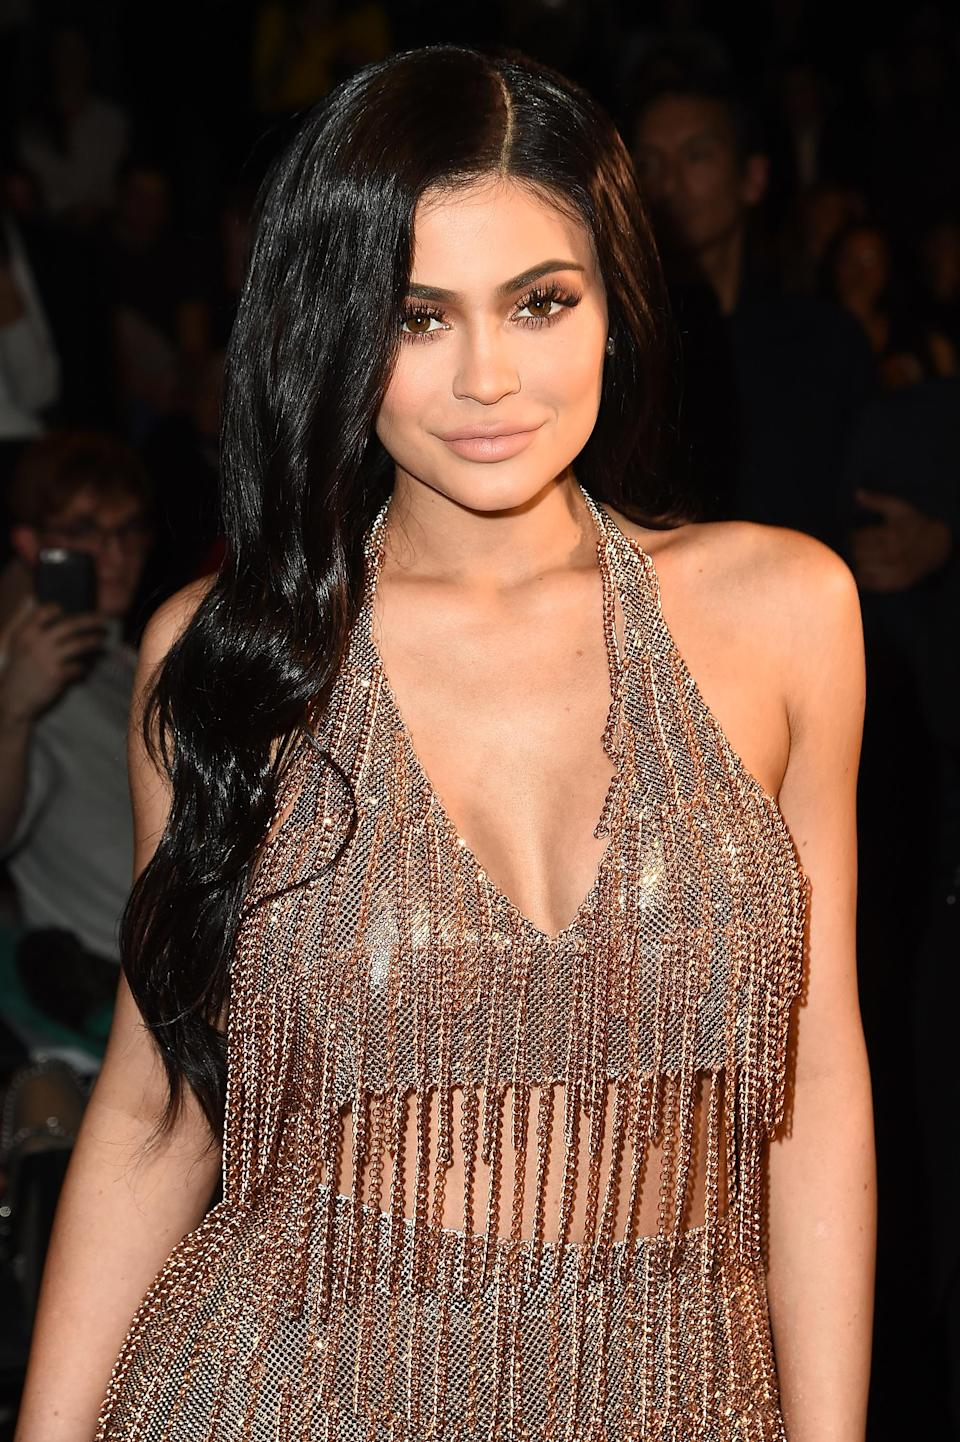 """<p>For years, social media mogul and lip kit extraordinaire Kylie Jenner denied having lip fillers until an interview with <a rel=""""nofollow noopener"""" href=""""https://www.allure.com/story/kim-kardashian-kylie-jenner-beauty-advice"""" target=""""_blank"""" data-ylk=""""slk:Allure"""" class=""""link rapid-noclick-resp""""><em>Allure</em></a> in 2016. """"I definitely made my lips a little too big at one point,"""" she revealed. """"I got excited and felt like I needed to do a lot."""" <em>[Photo: Getty]</em> </p>"""